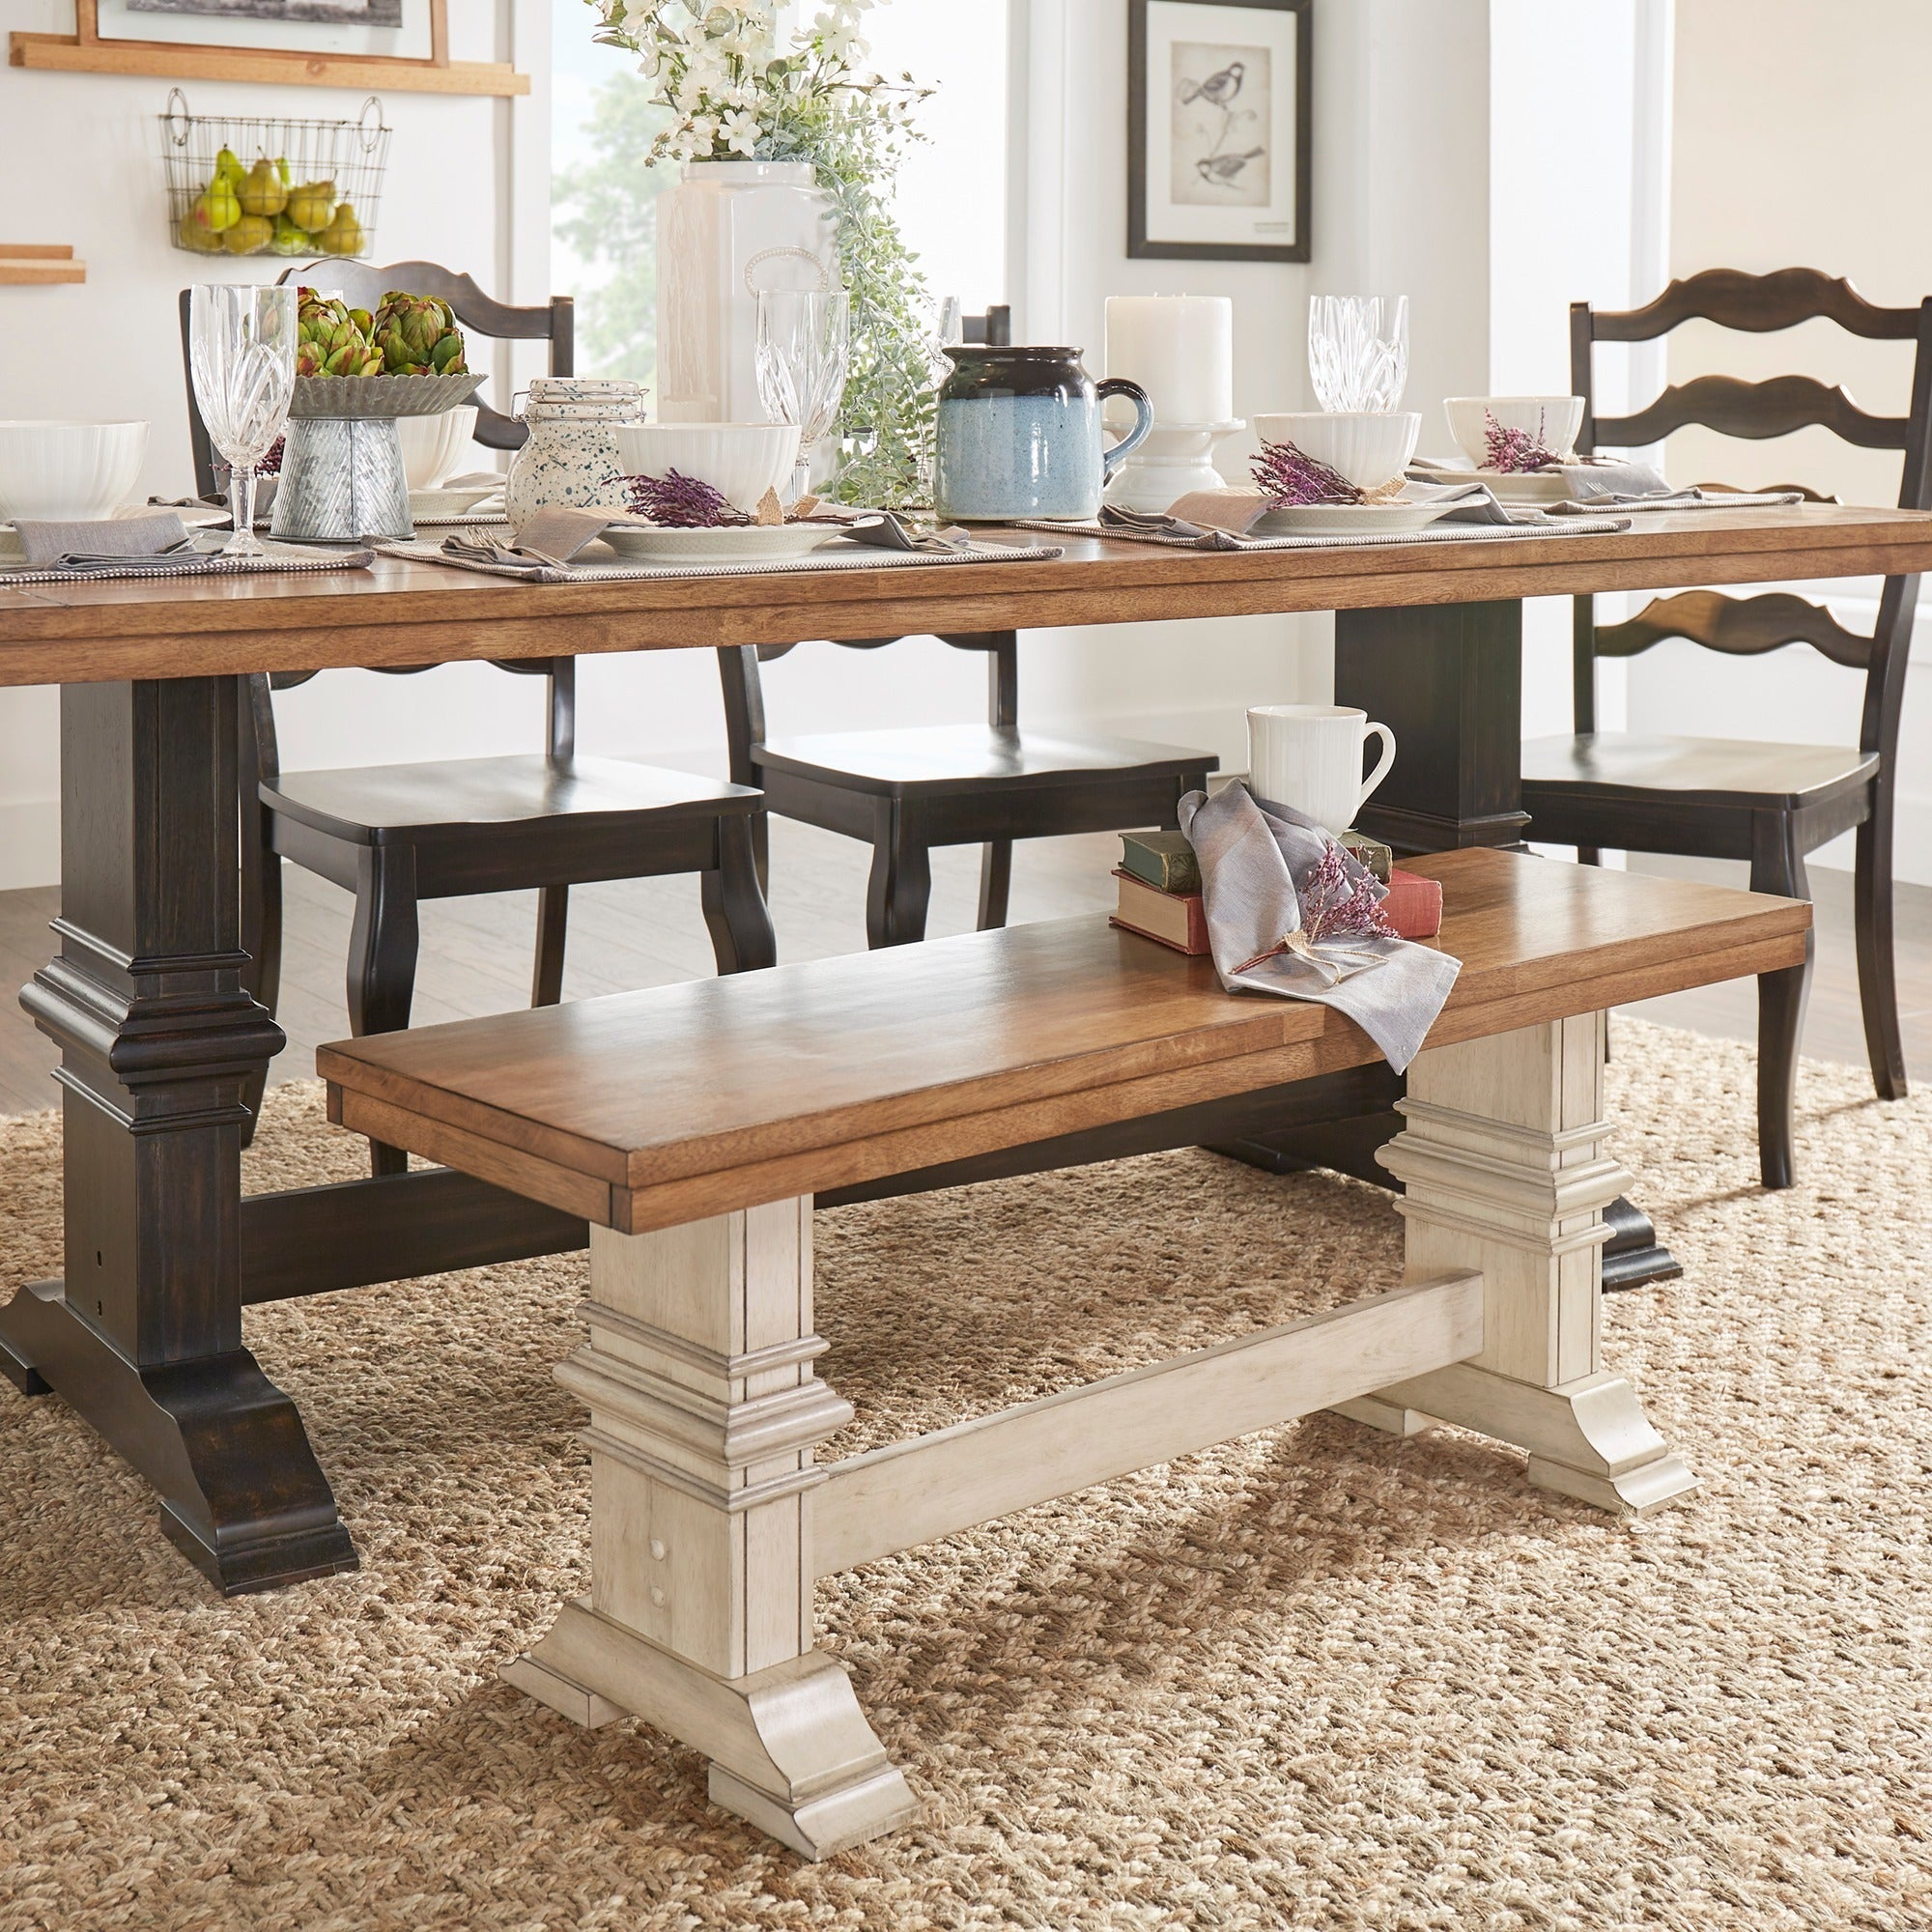 Eleanor Two-Tone Trestle Leg Wood Dining Bench by iNSPIRE Q Classic - Free  Shipping Today - Overstock.com - 20163614